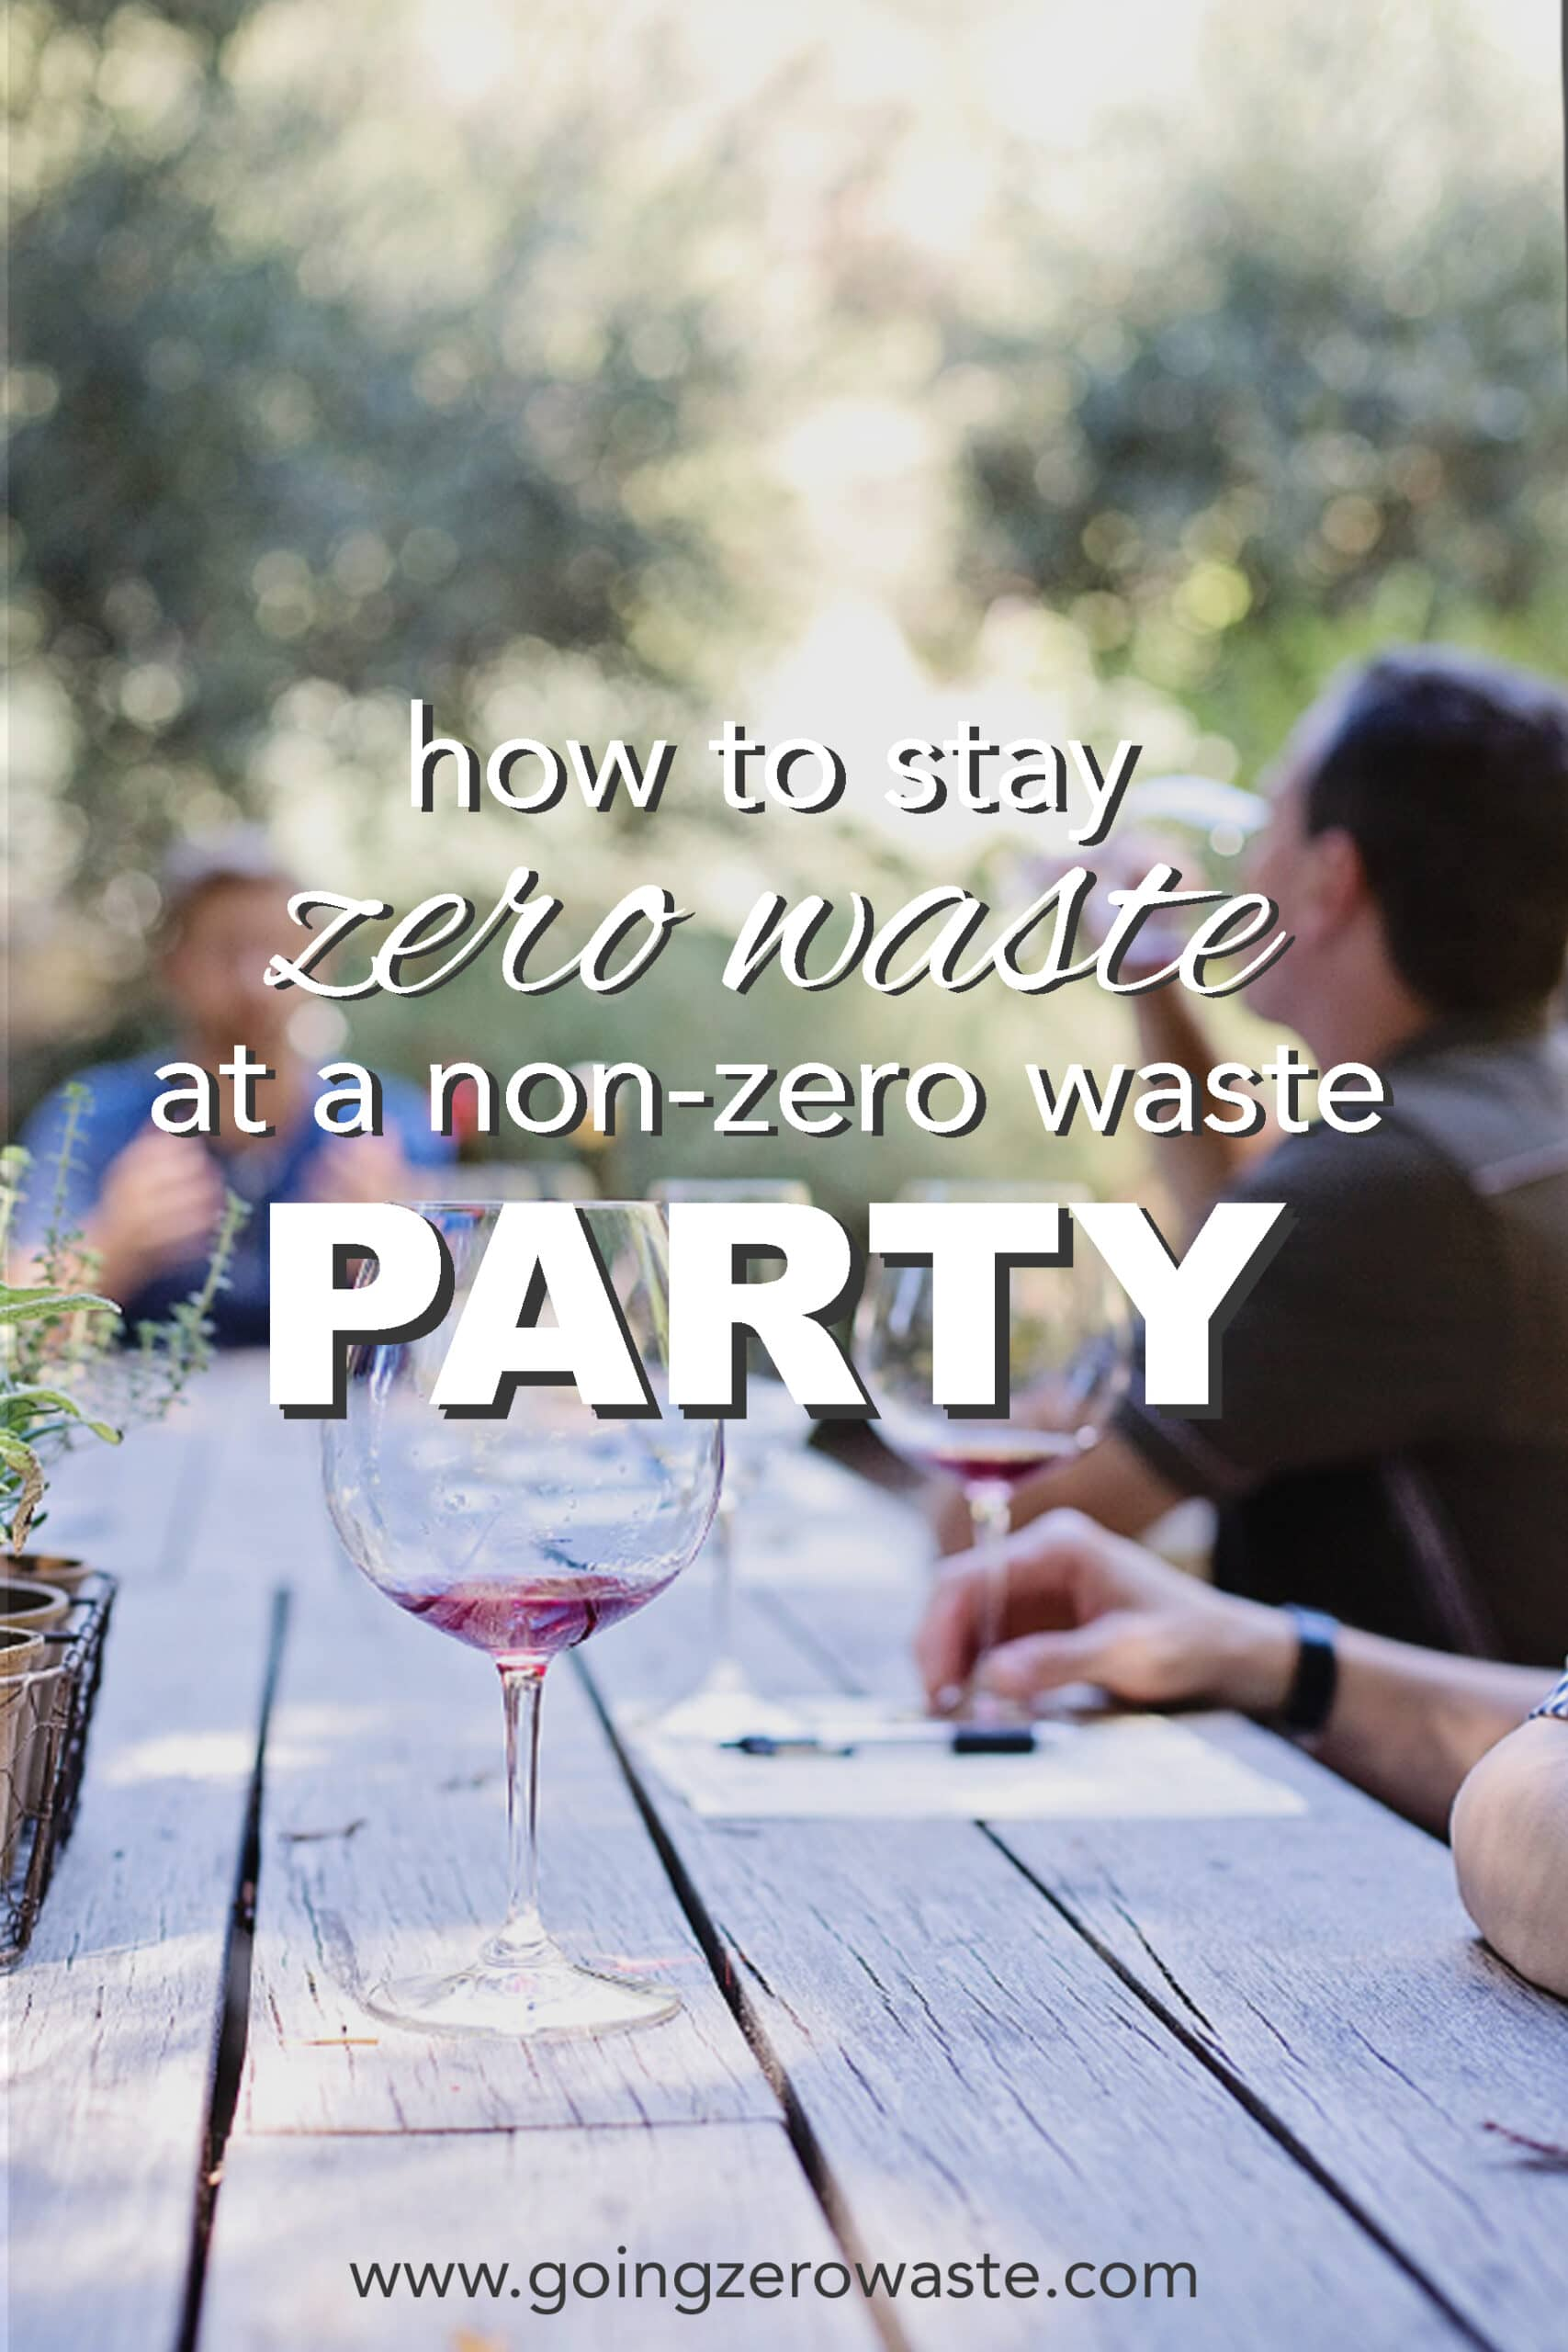 How to Stay Zero Waste at a Non-Zero Waste Party